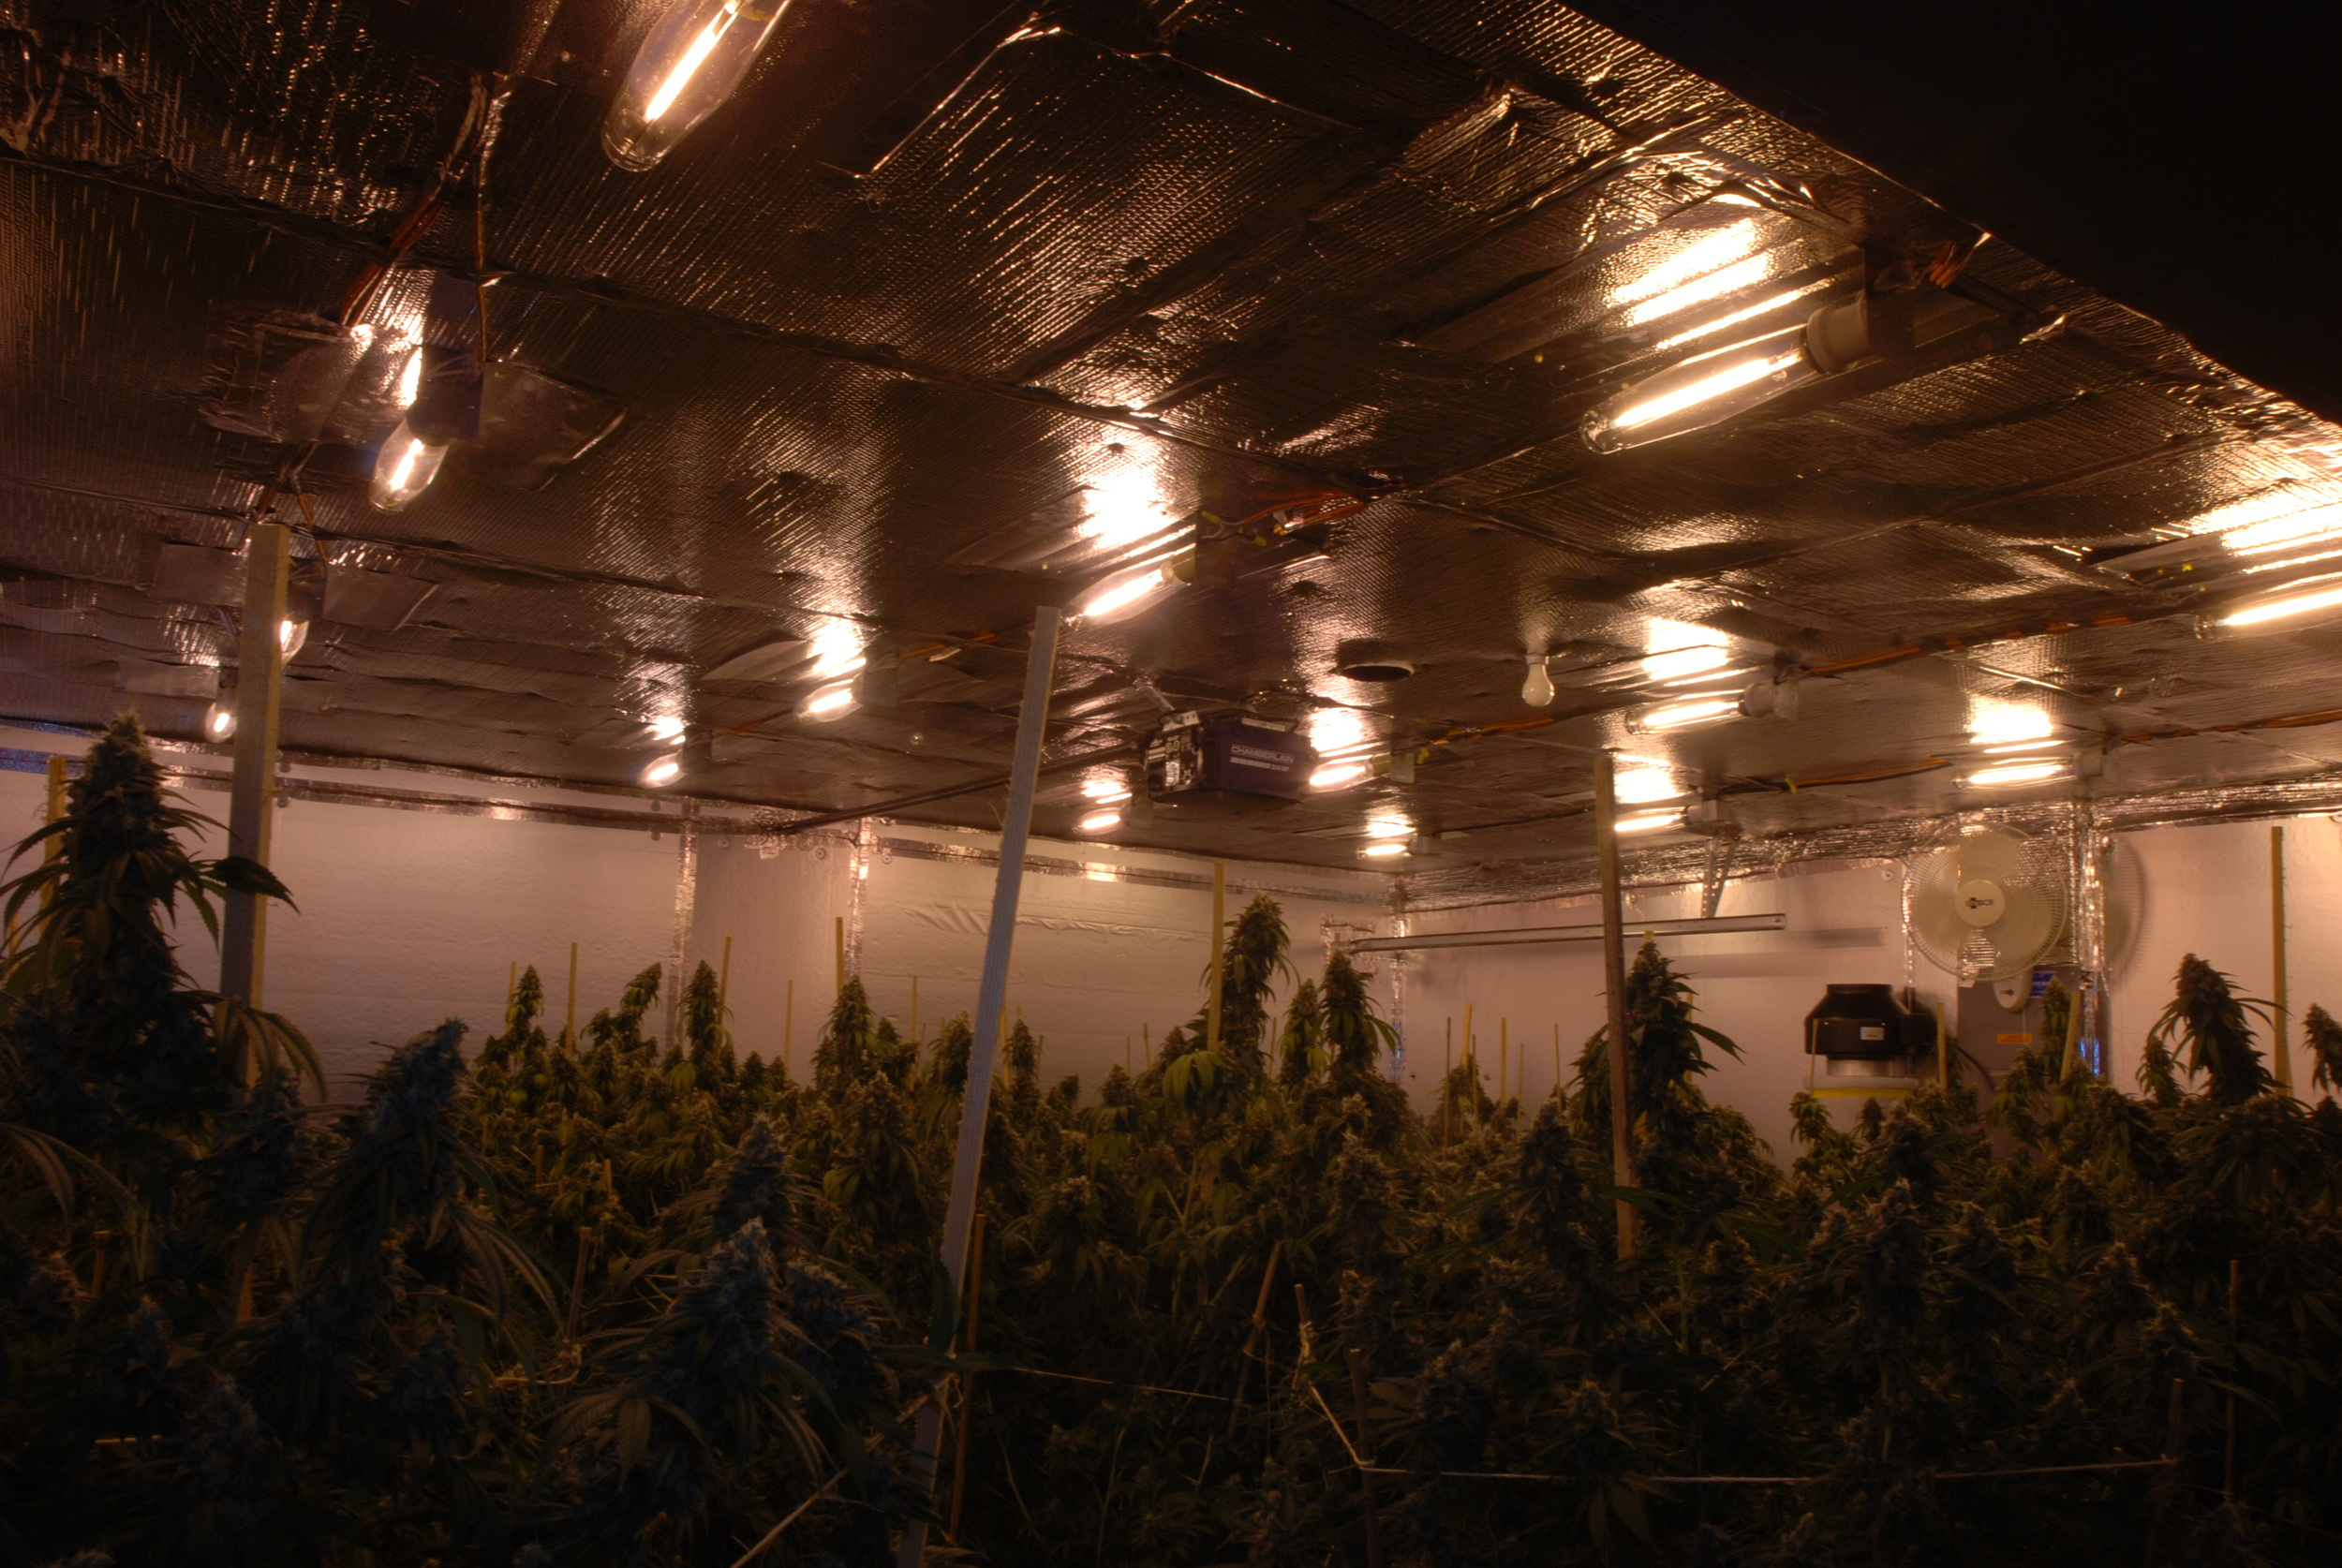 PHOTO: Images form a marijuana grow house operation taken down by theCape Coral Police Department VIN and SCU units. (Photo Courtesy ofCape Coral Police Department)